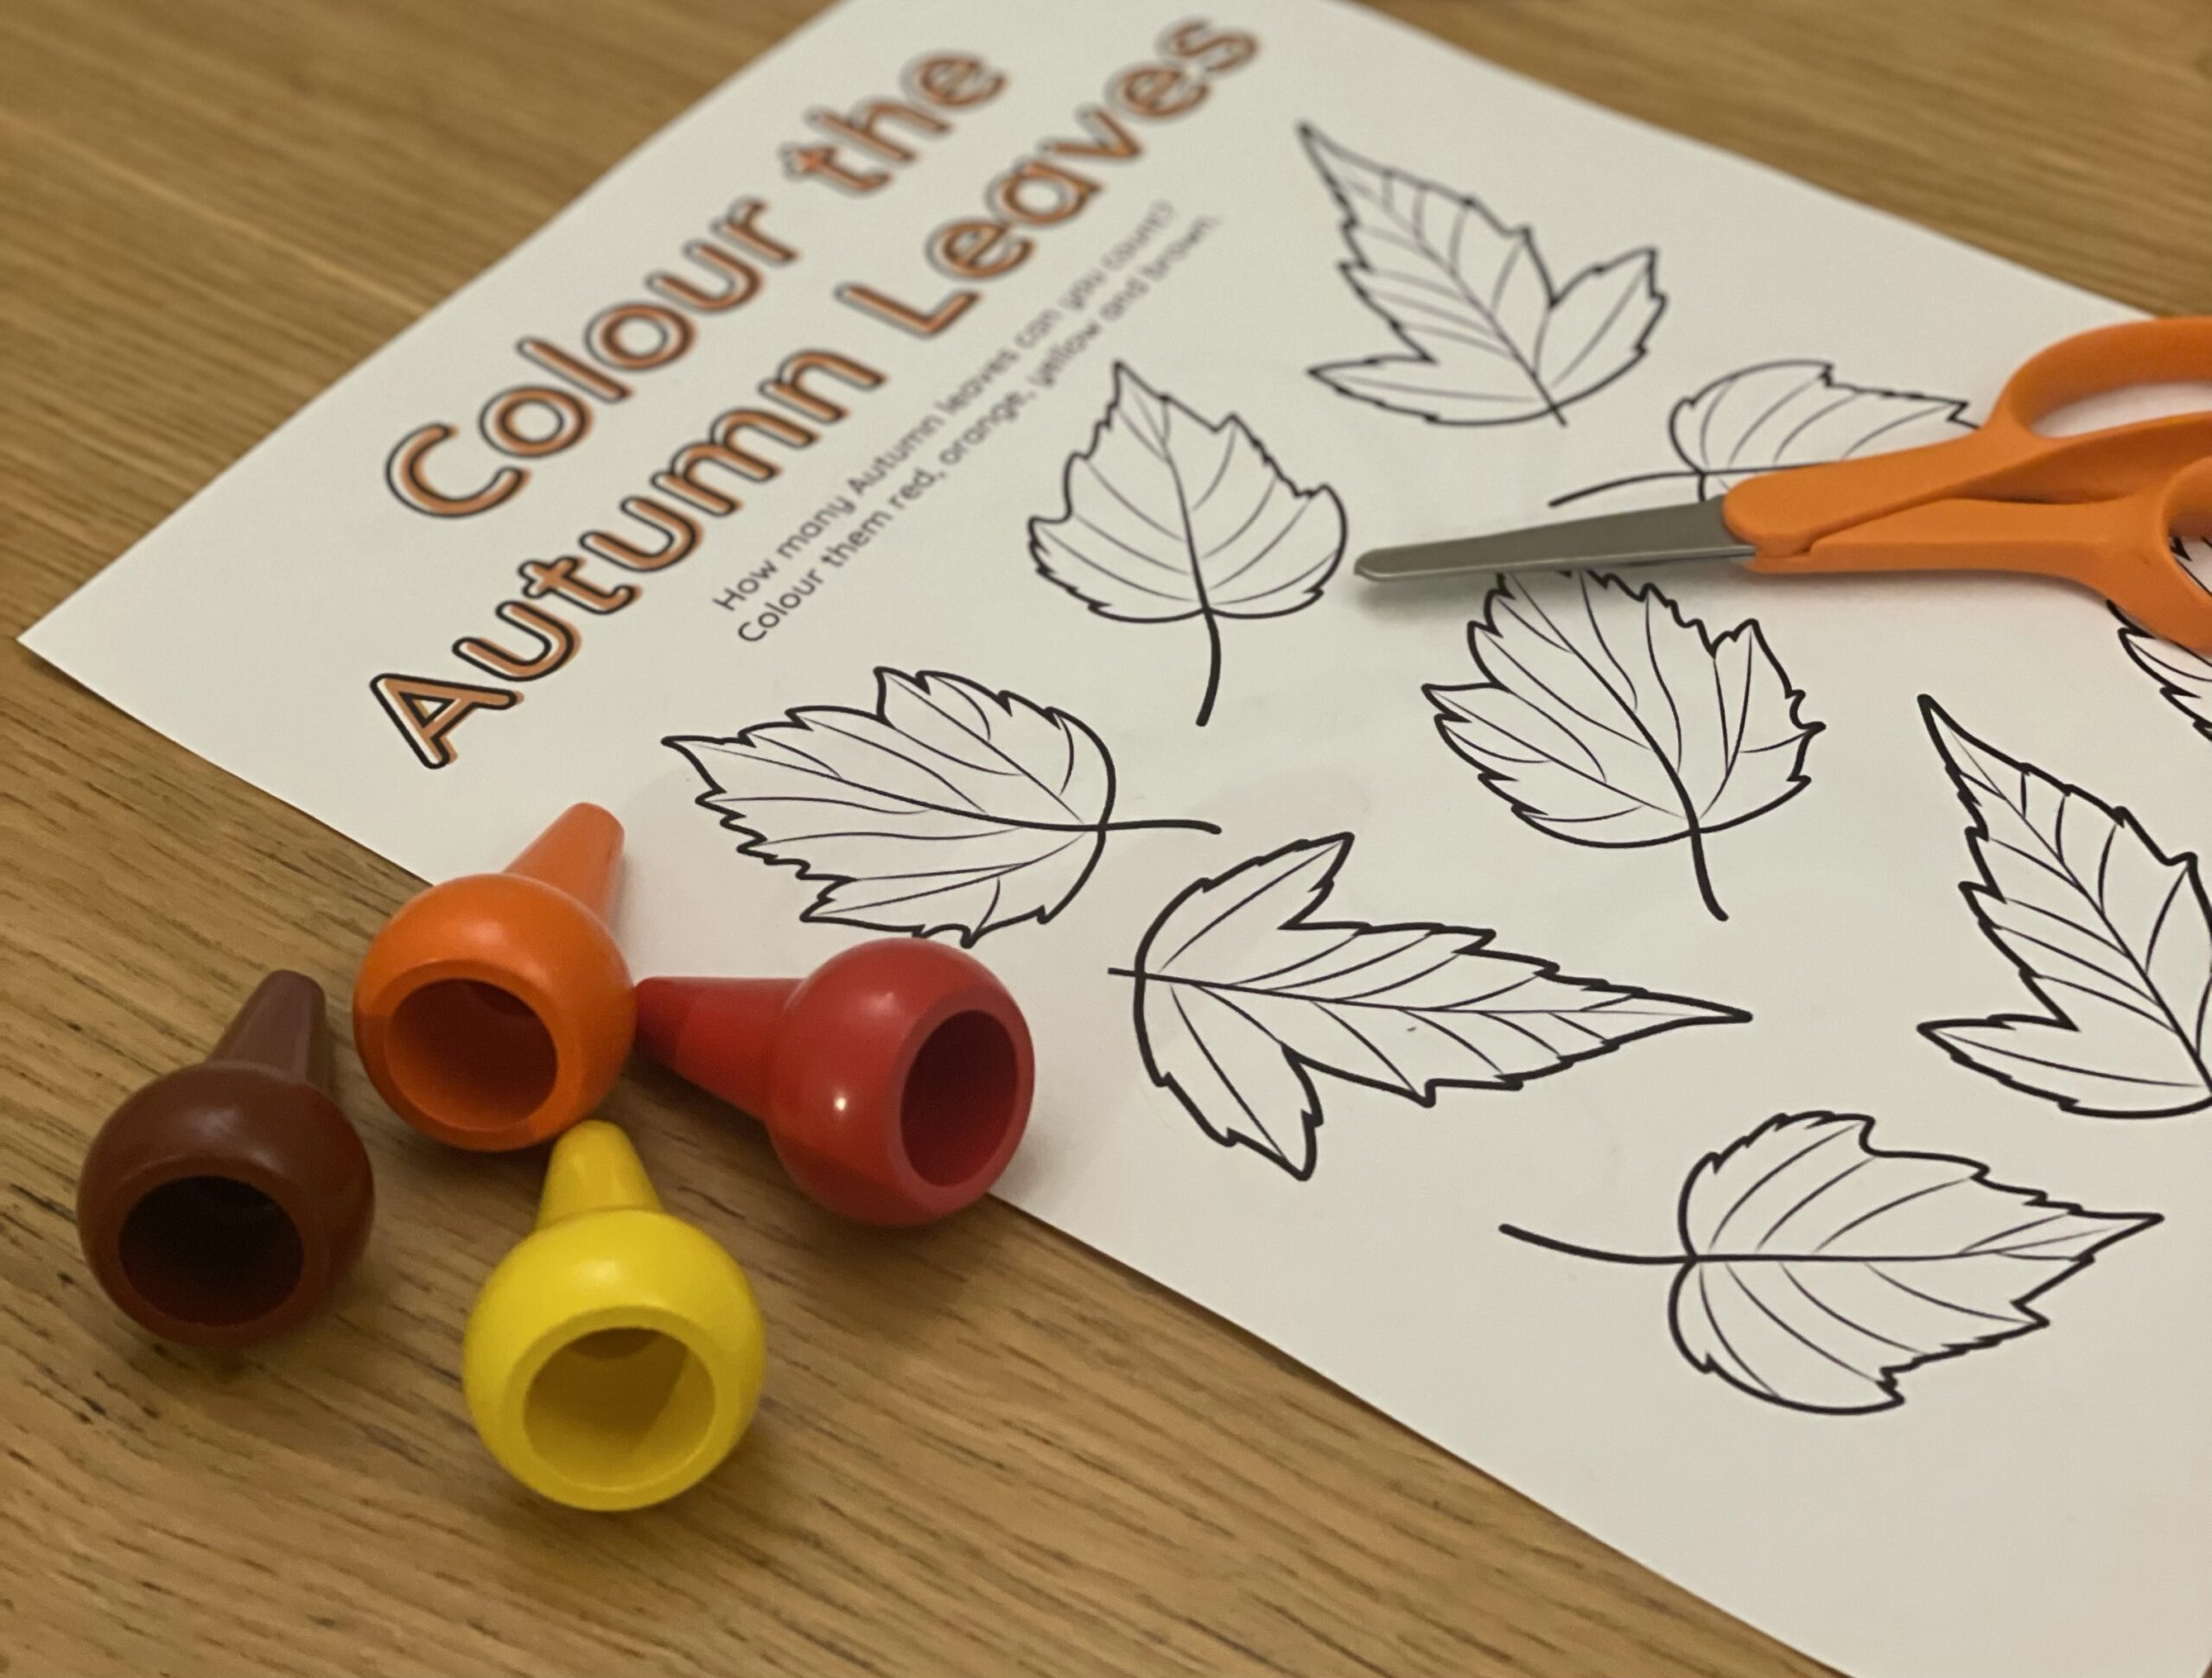 Free Autumn Printables: Autumn Leaf Coloring, Cutting and Sticking Fall Tree Craft